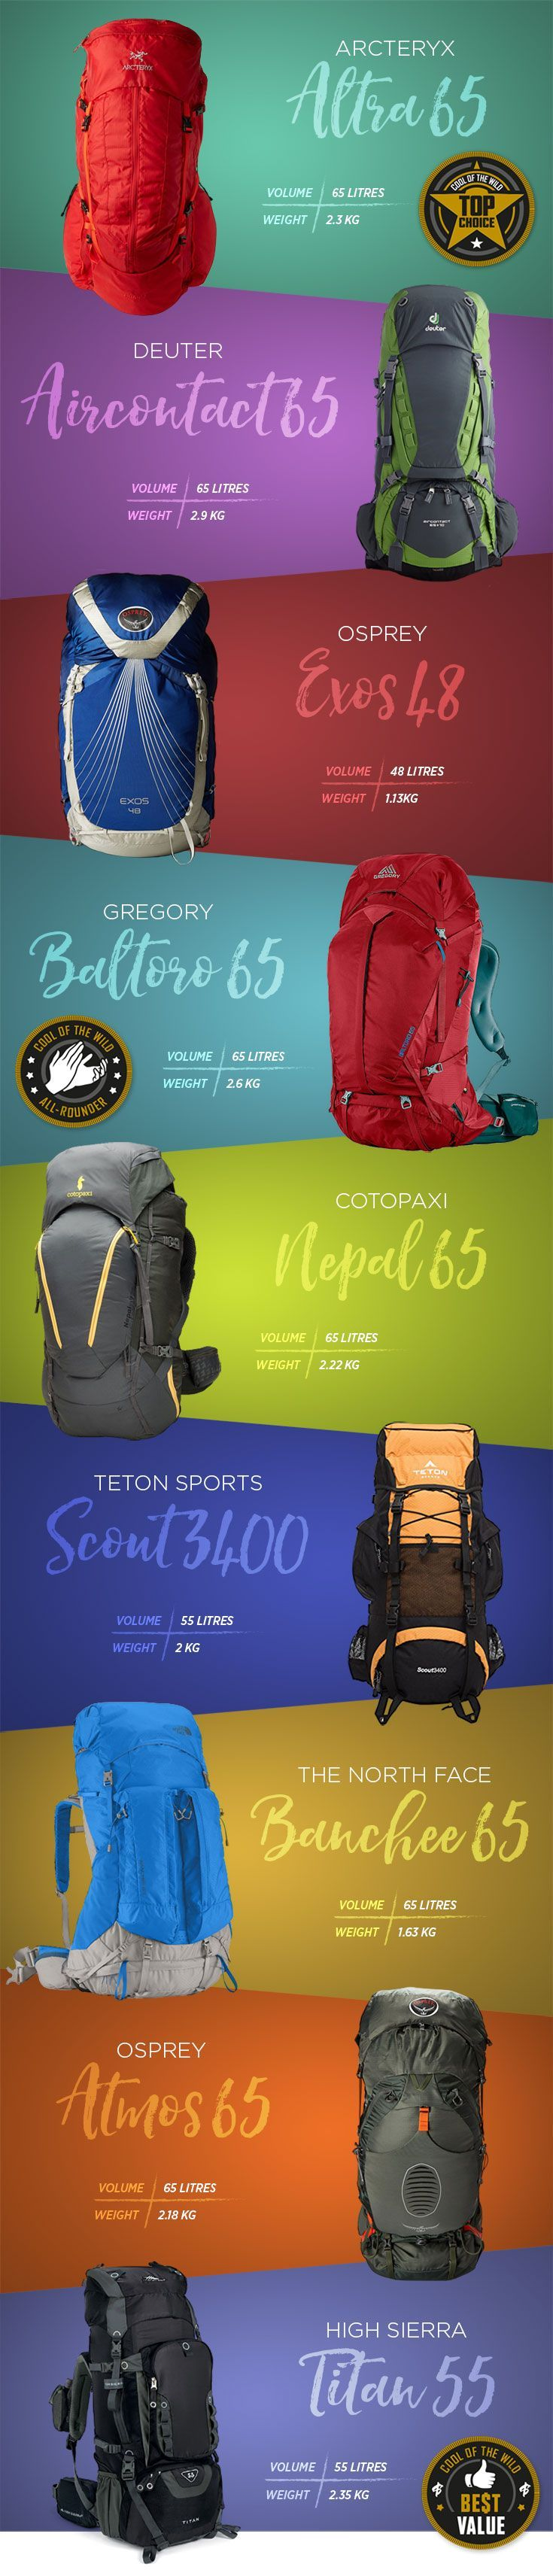 Check out this essential guide on what to look for in an excellent backpack for hiking and trekking and read our reviews of the 9 best Backpacks in 2017